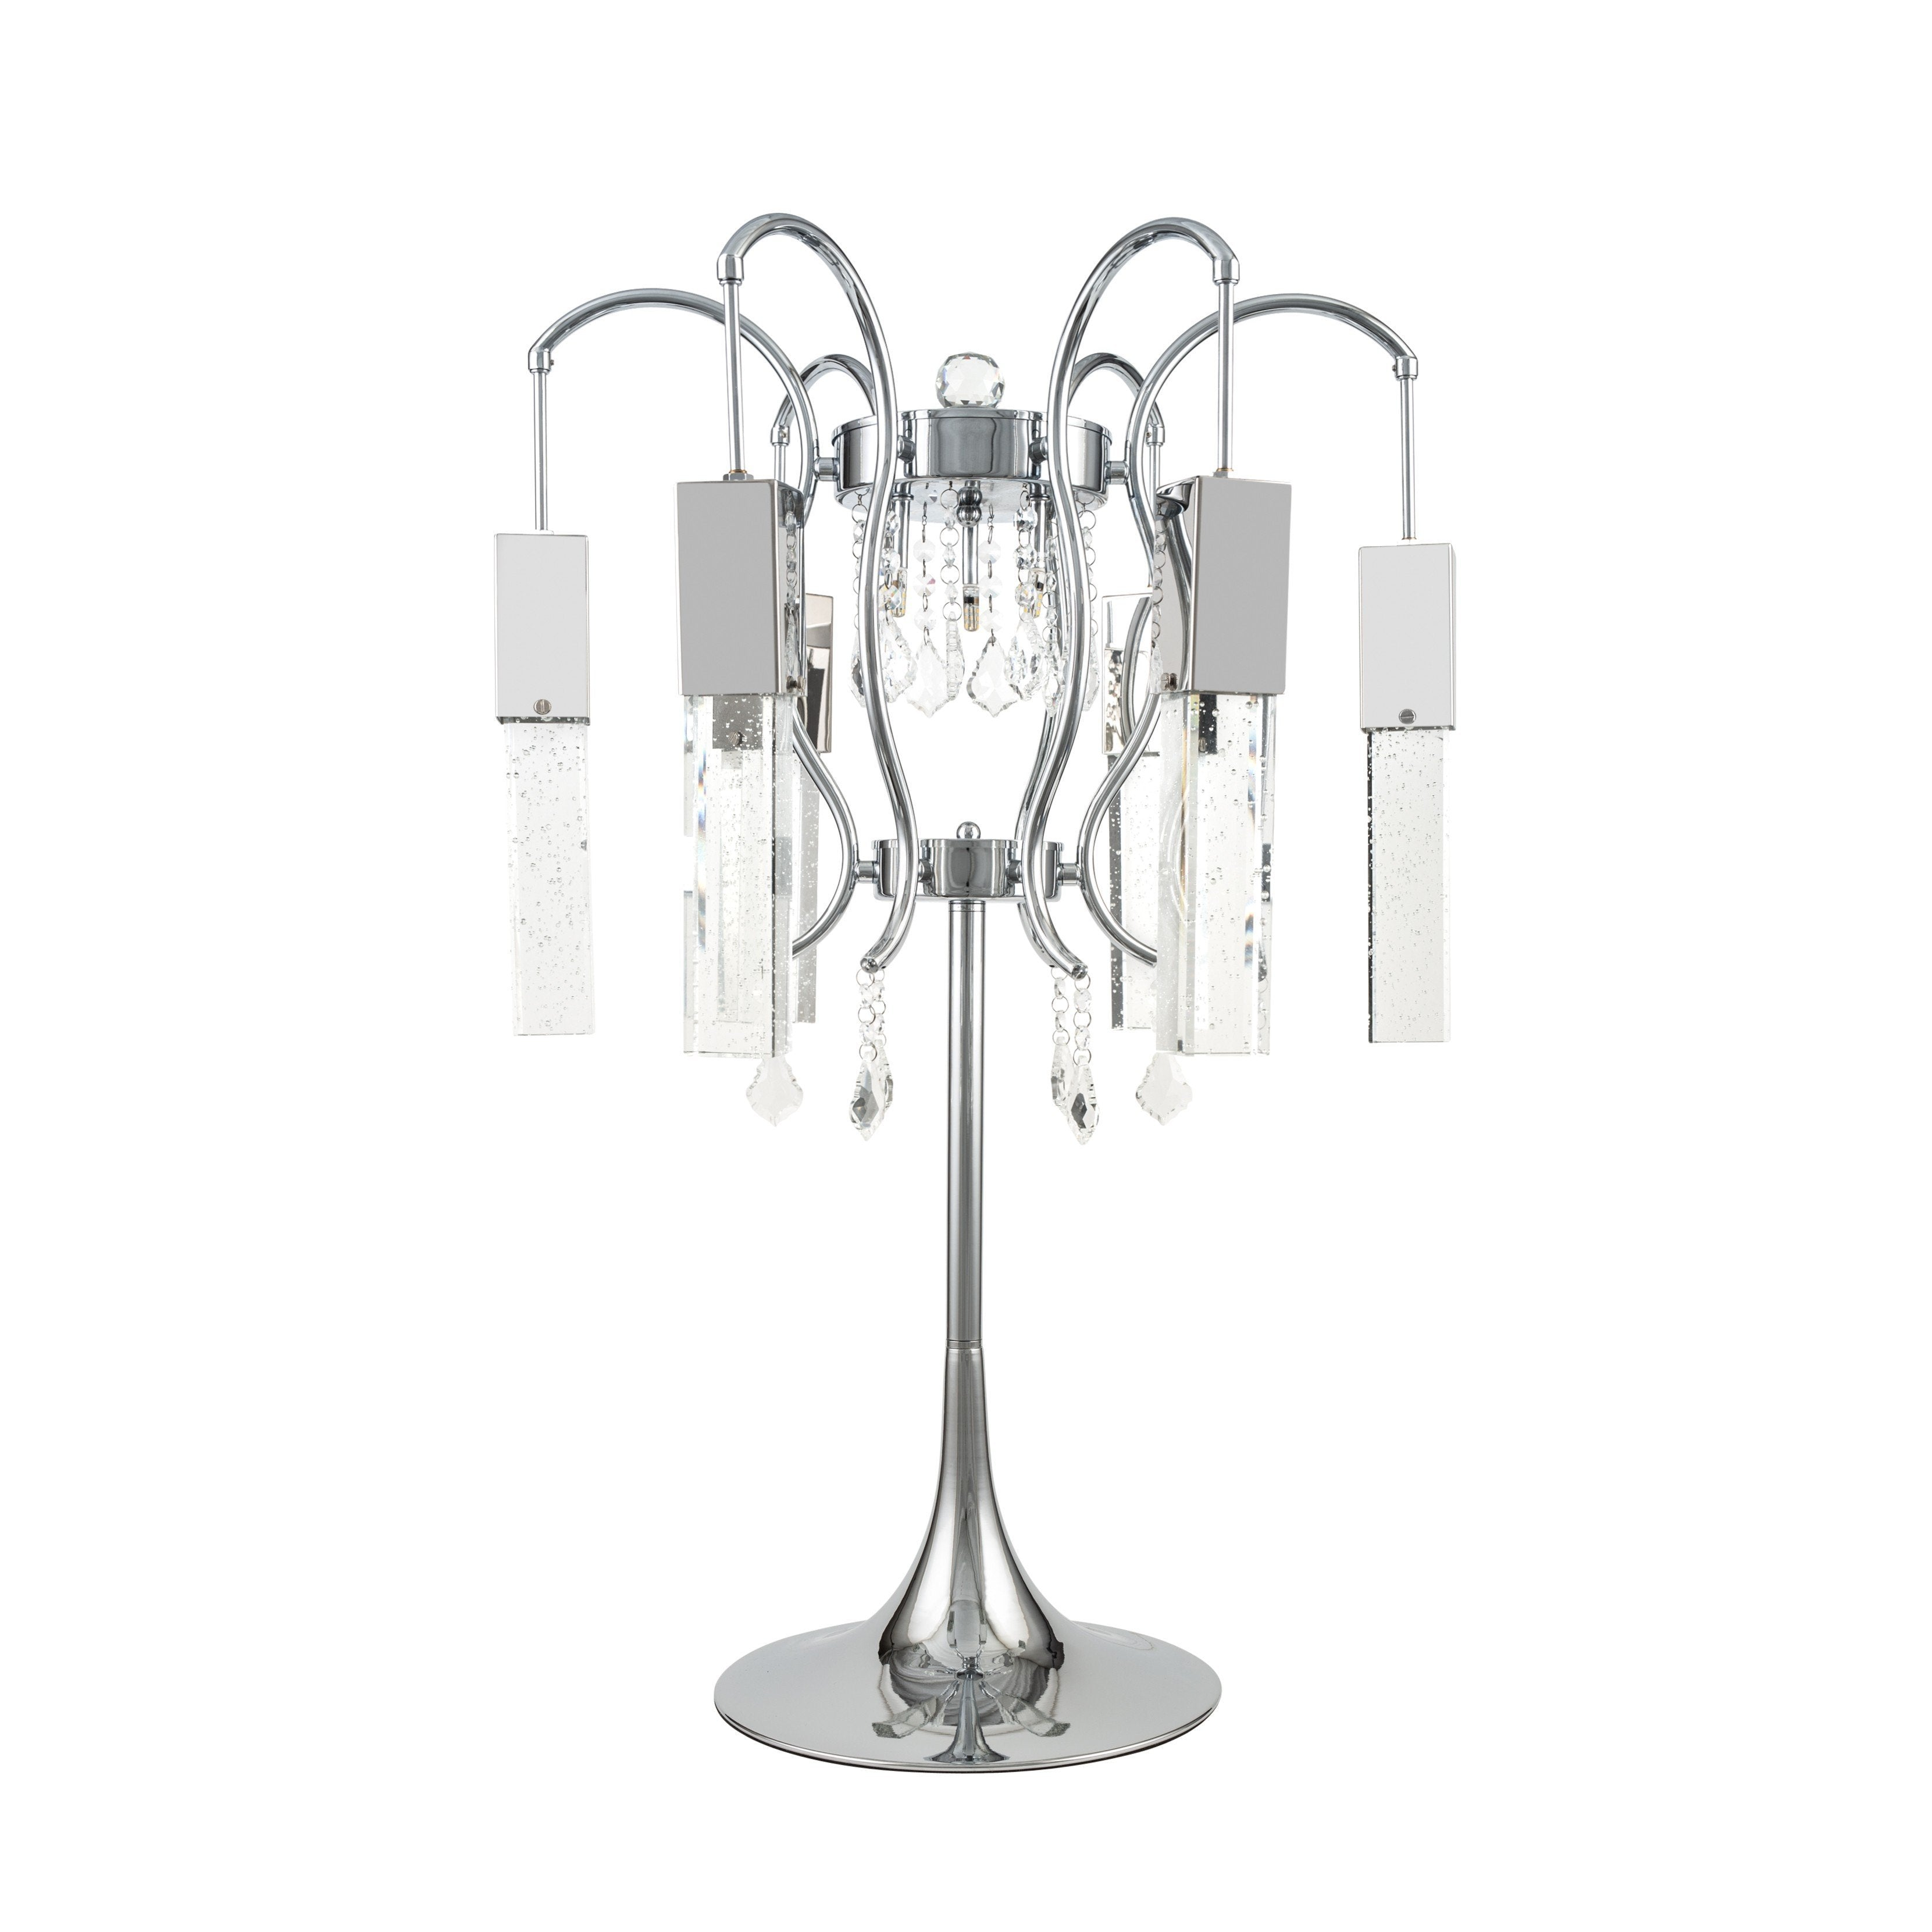 Buy Retro Chic Crystal Chandelier Table Lamp at Lifeix Design